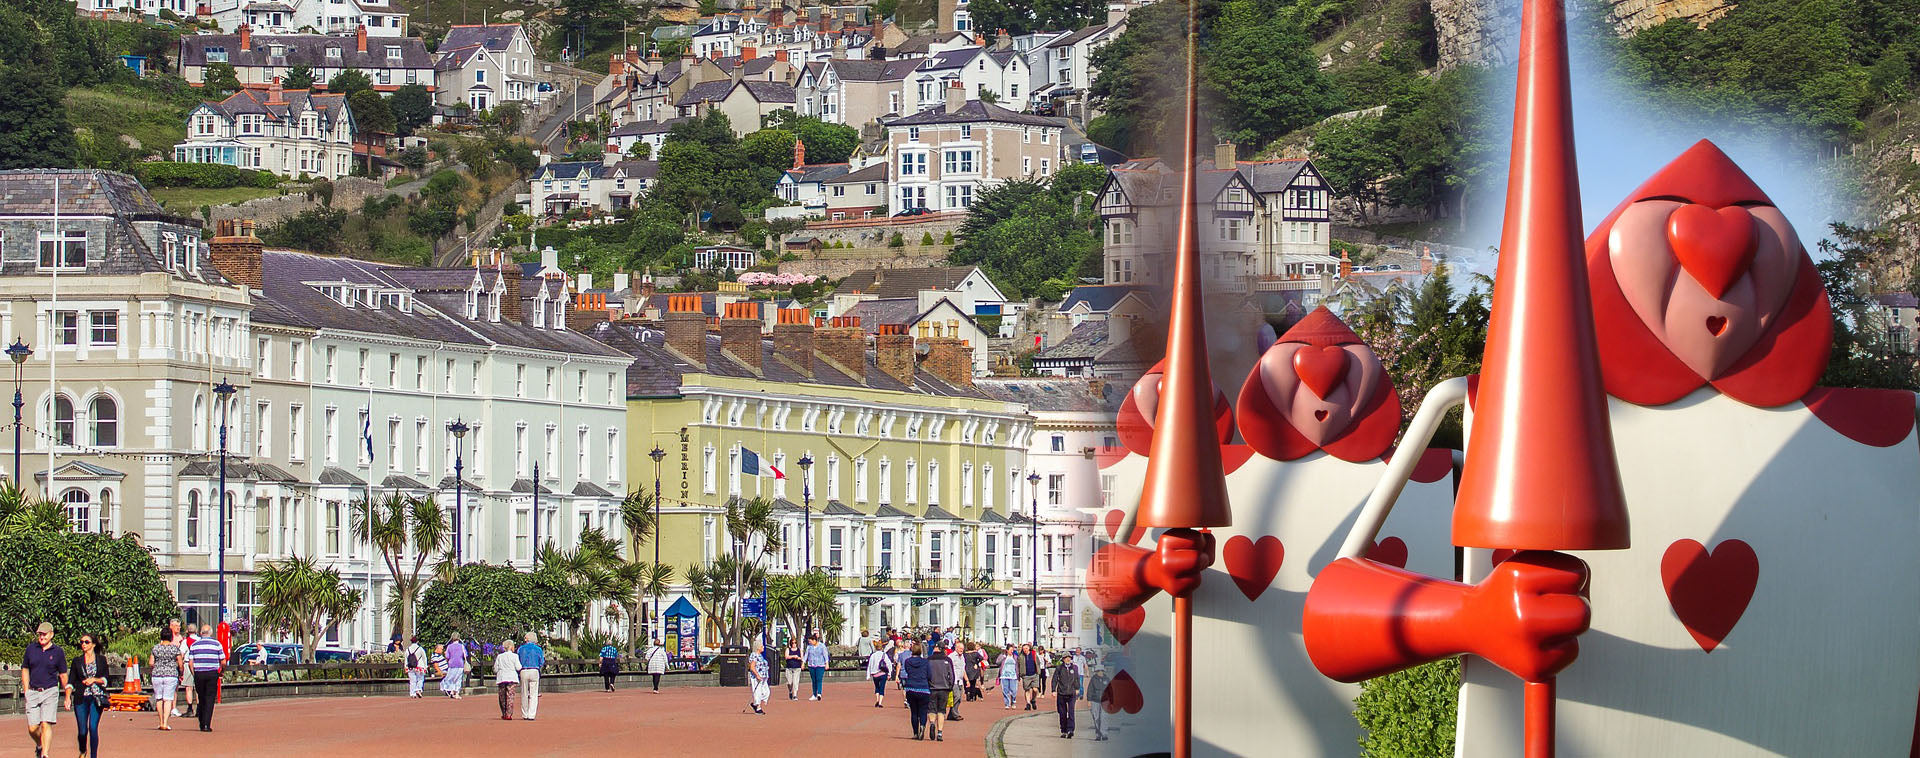 Quirky Treasure Trails - Don't be late to investigate - explore Llandudno to seek the inspiration for Alice in Wonderland...